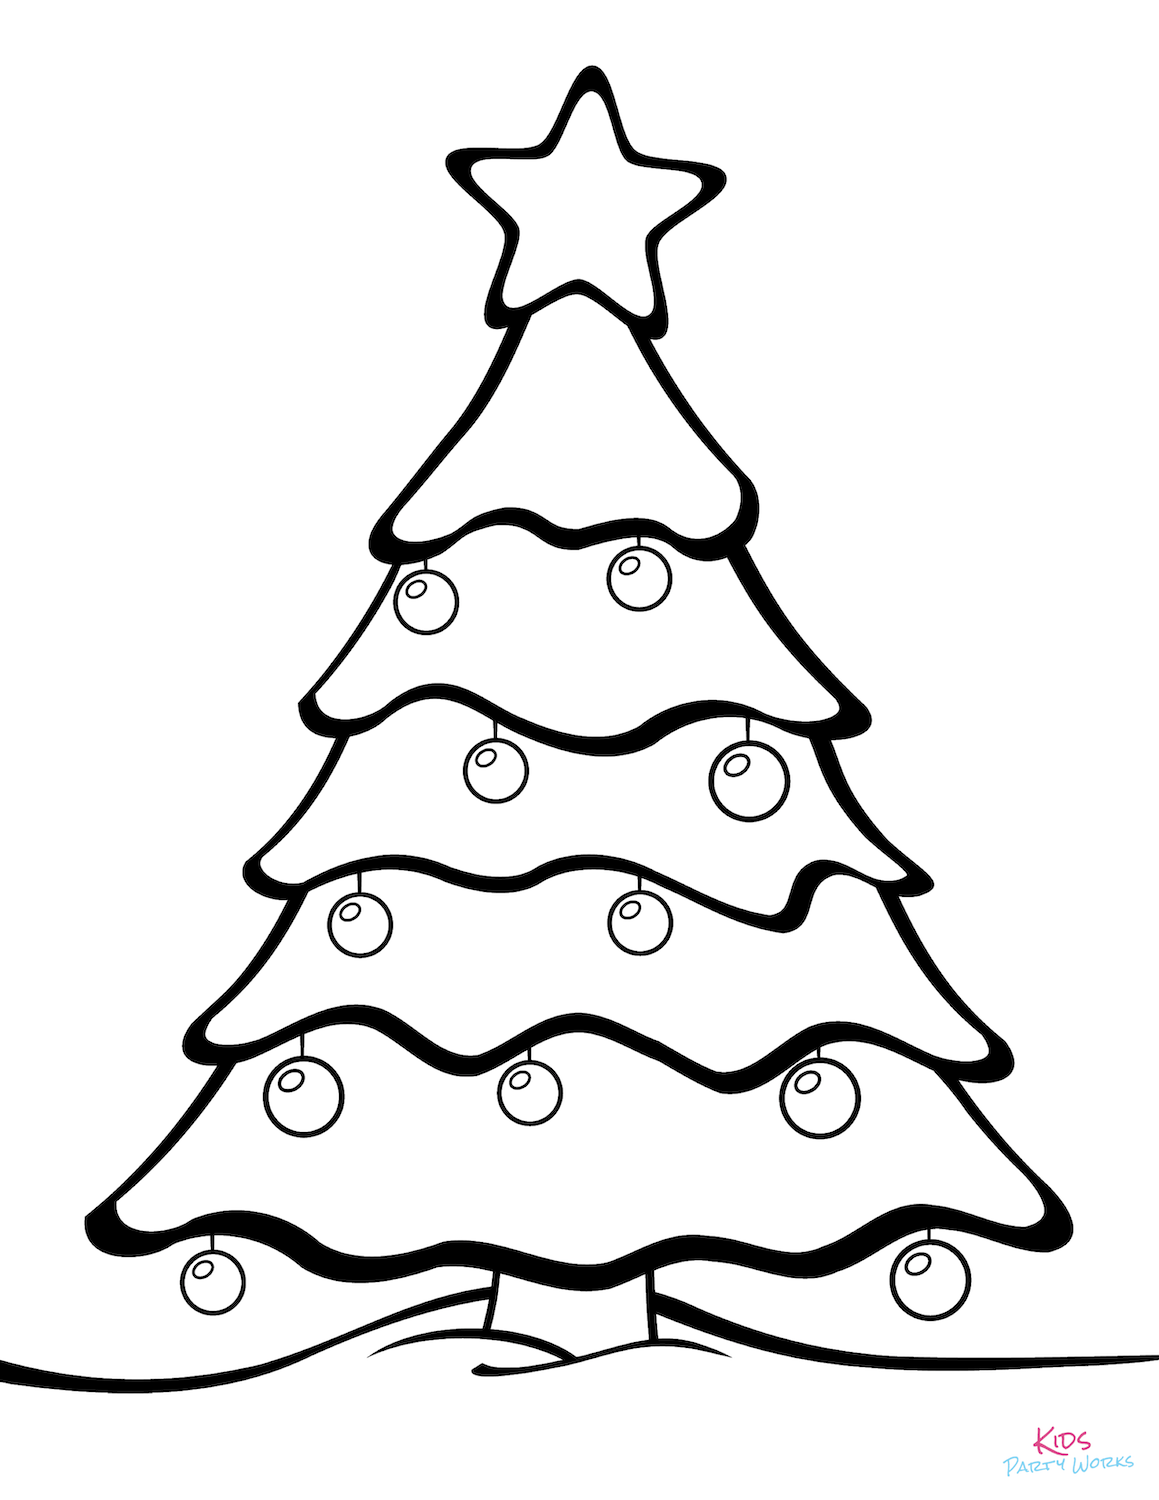 Free Christmas Coloring Pages. Lots of beautiful Christmas coloring ...